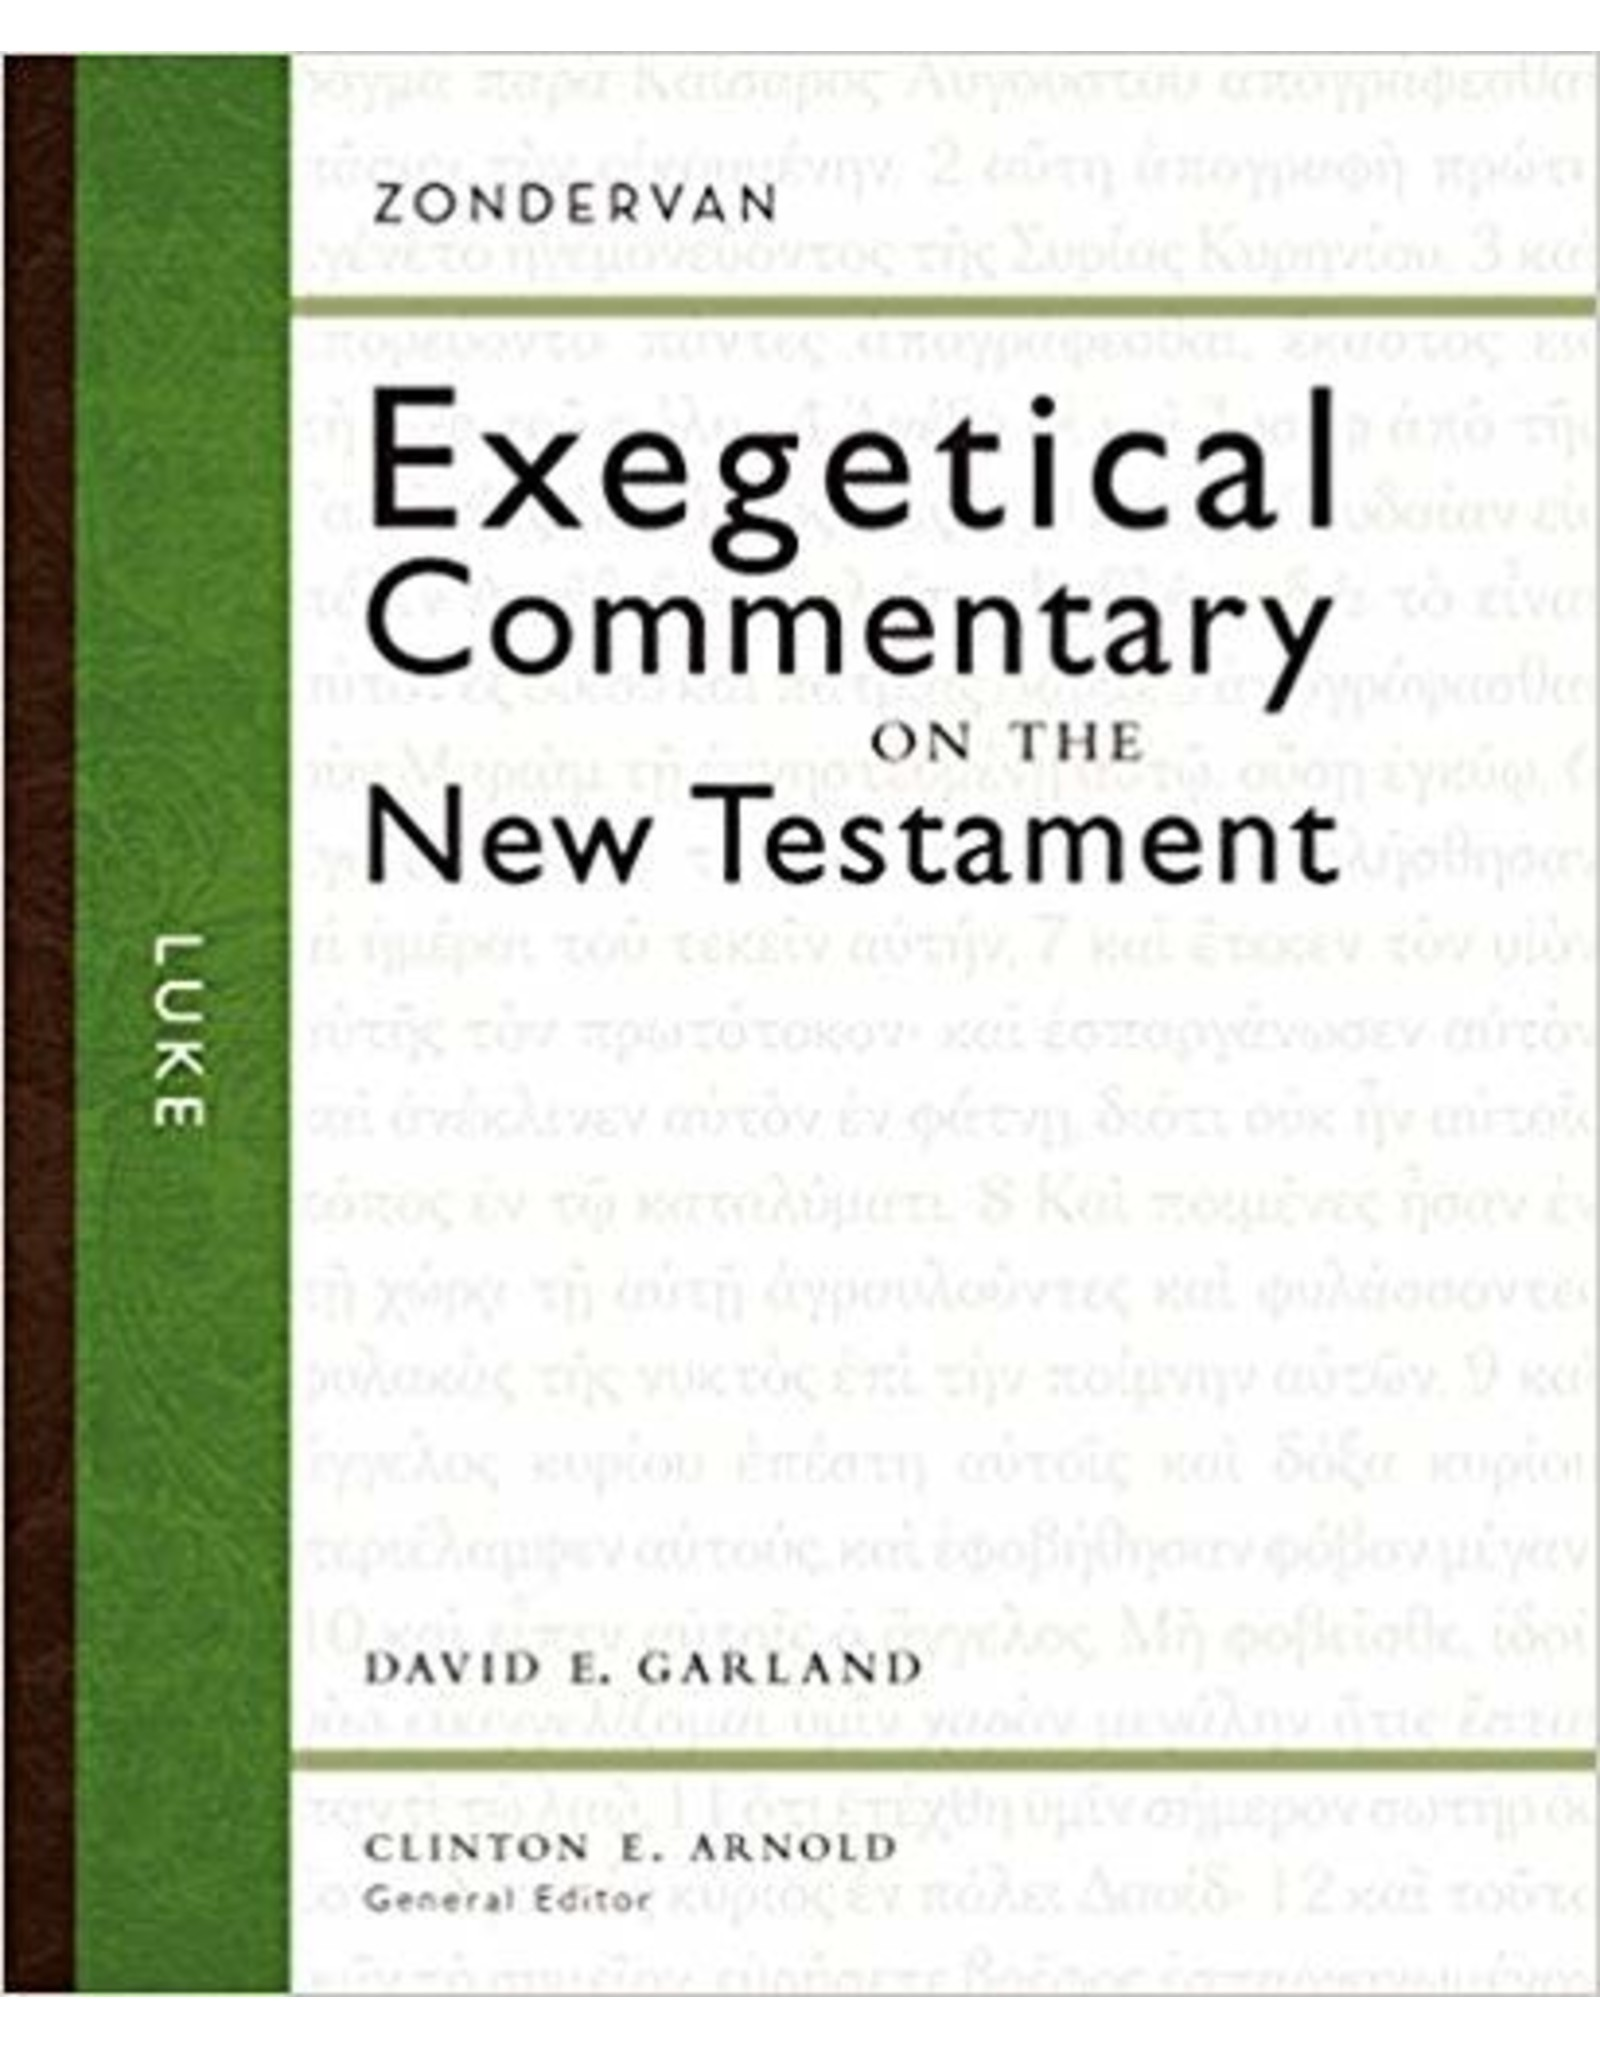 Arnold/Garland Exegetical Commentary on the New Testament Luke